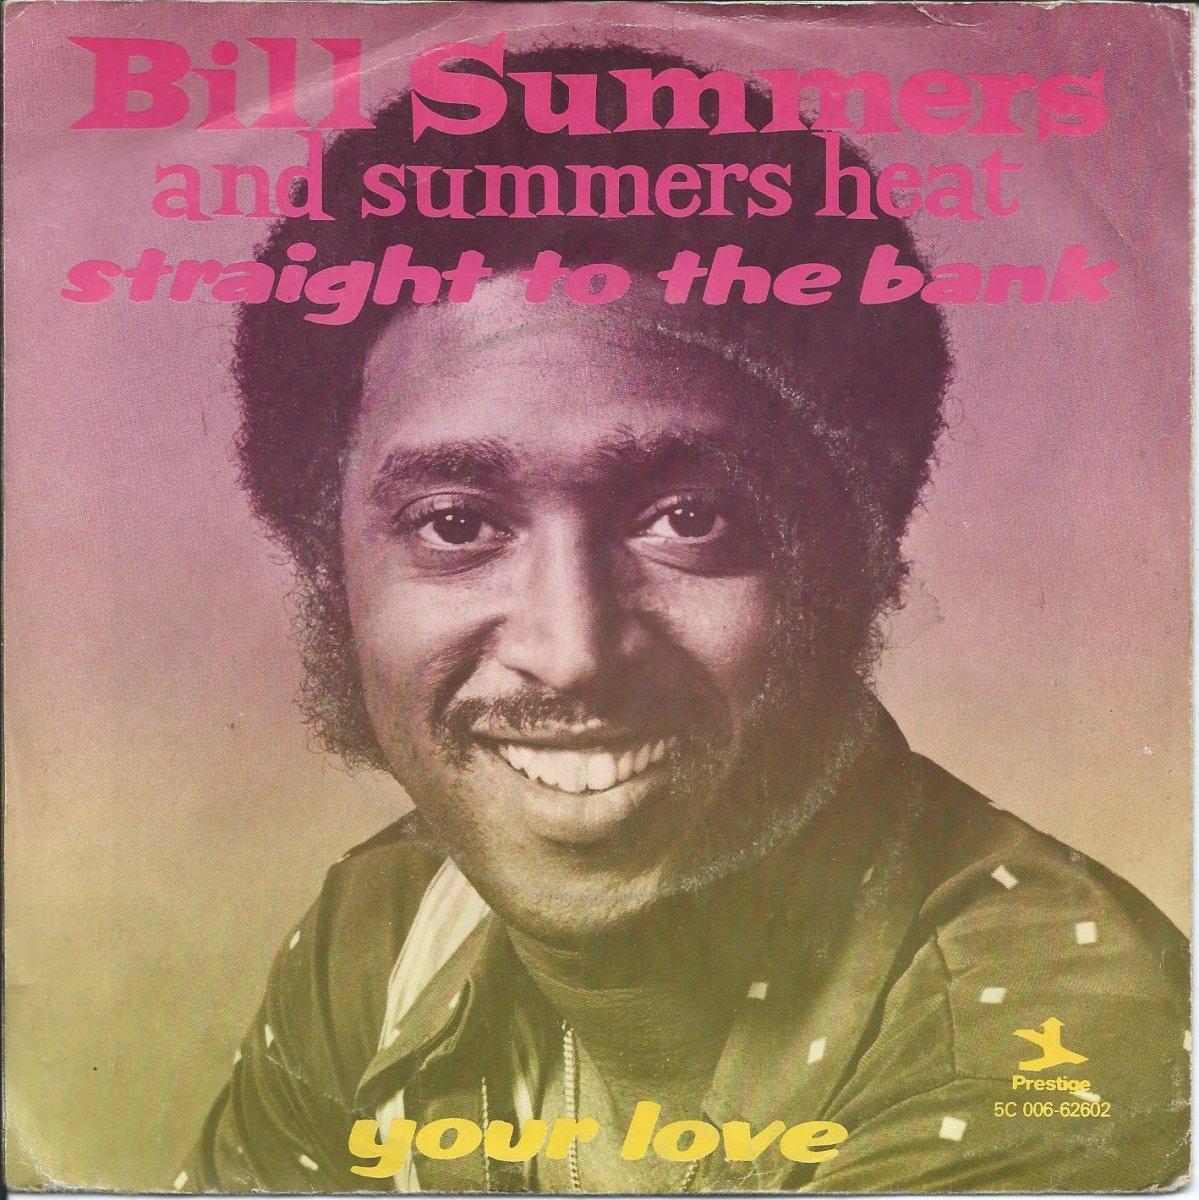 BILL SUMMERS & SUMMERS HEAT ‎/ STRAIGHT TO THE BANK / YOUR LOVE (7